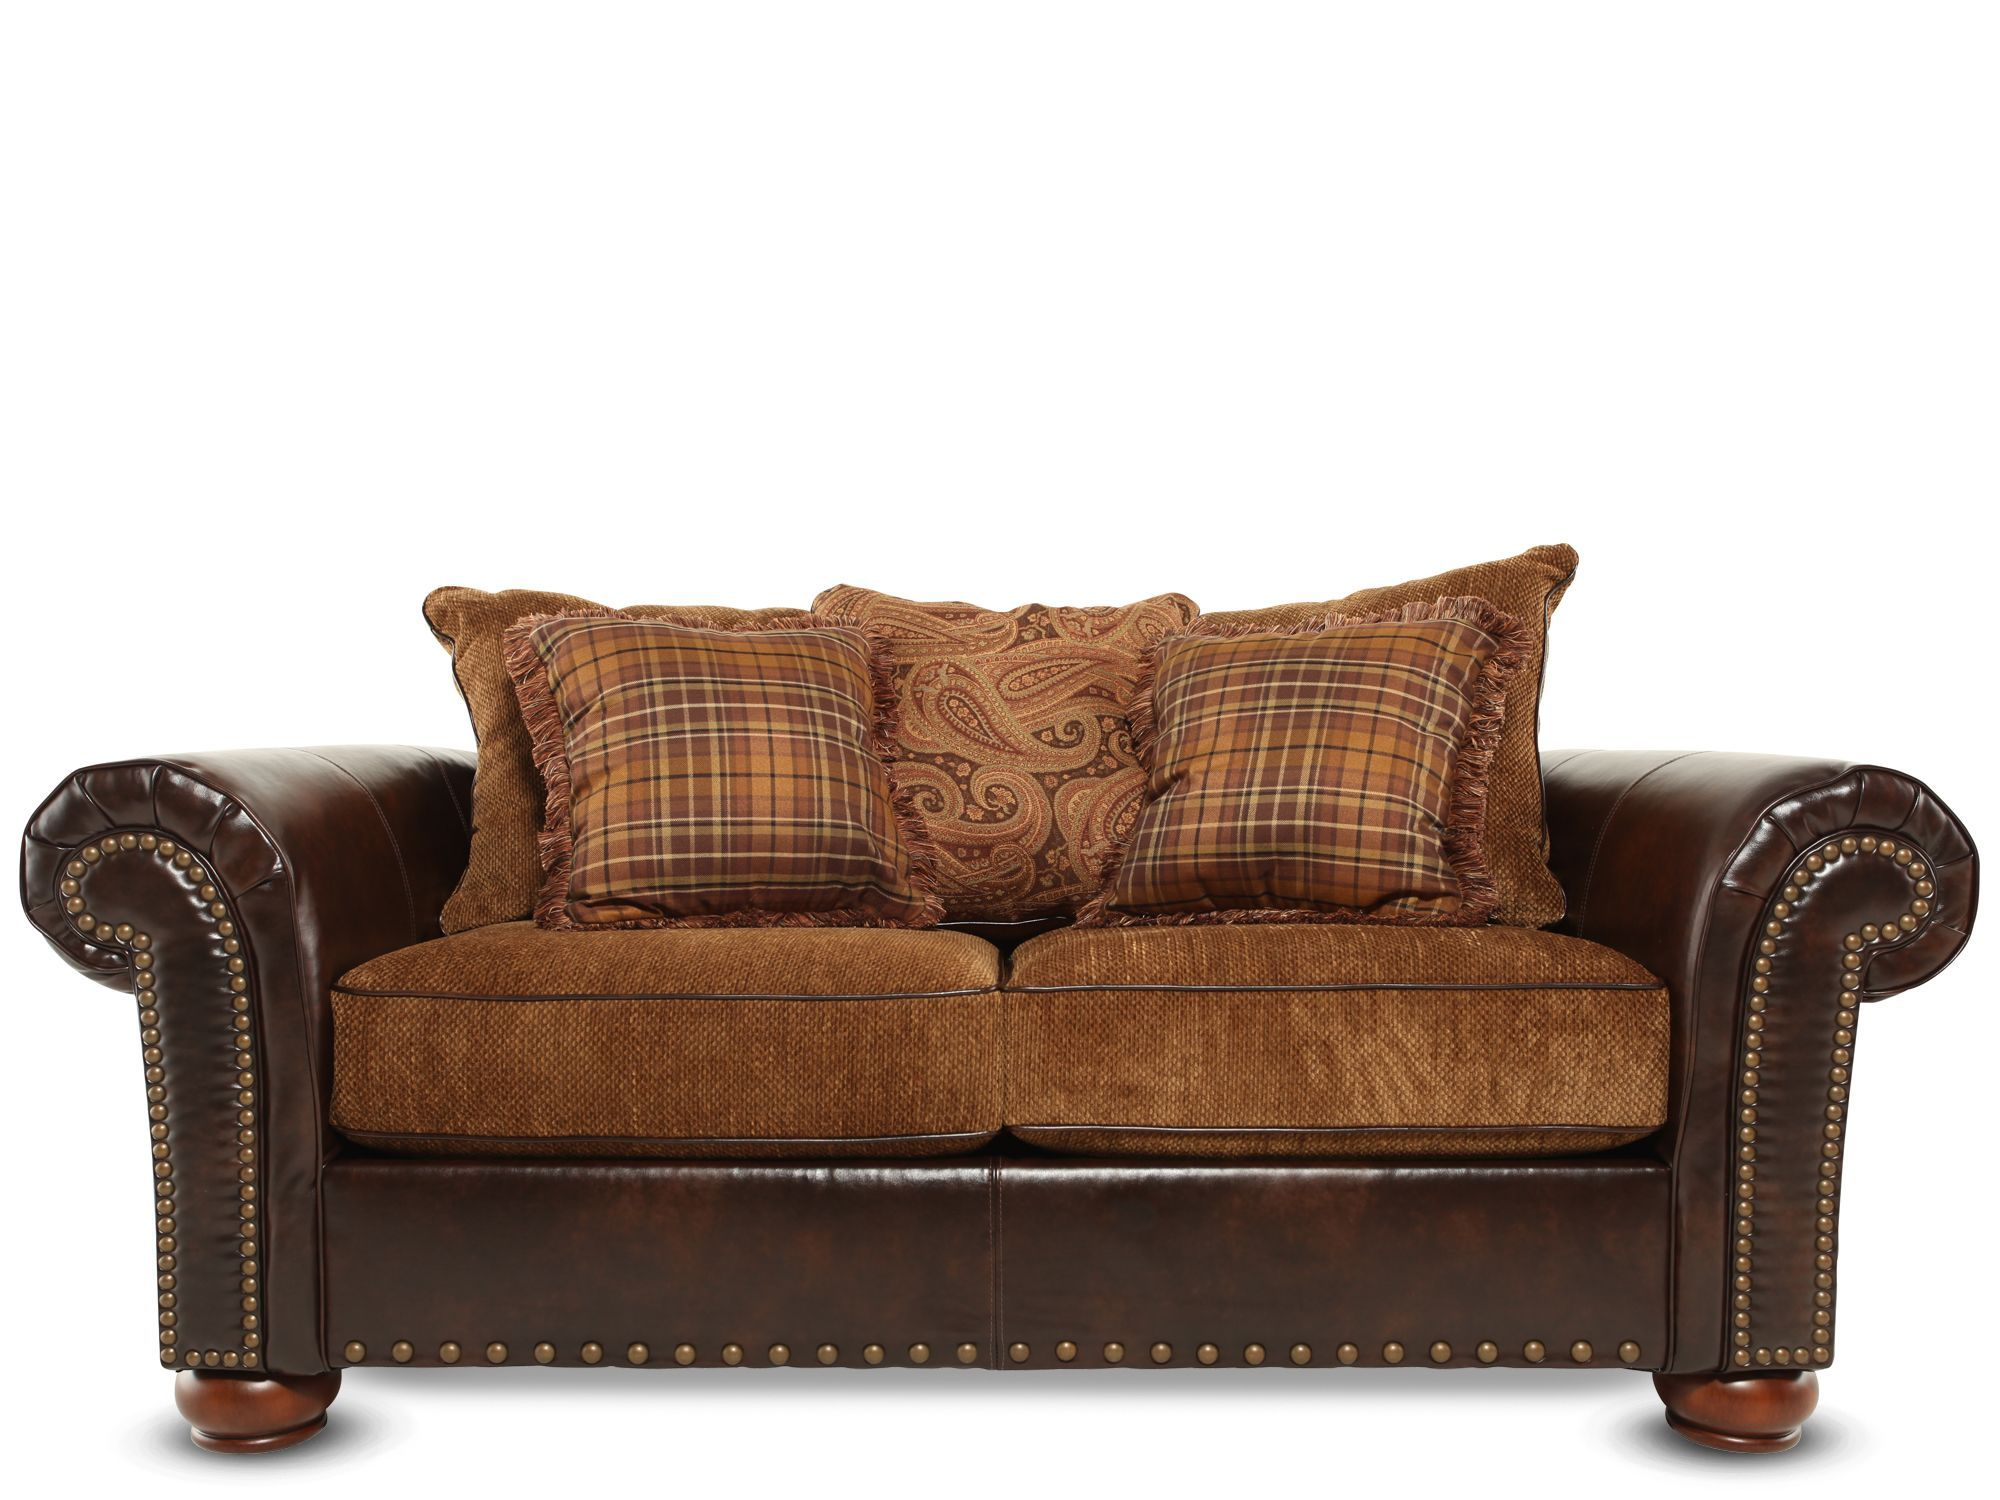 Leather Fabic Studded Loveseat Promotion Furniture